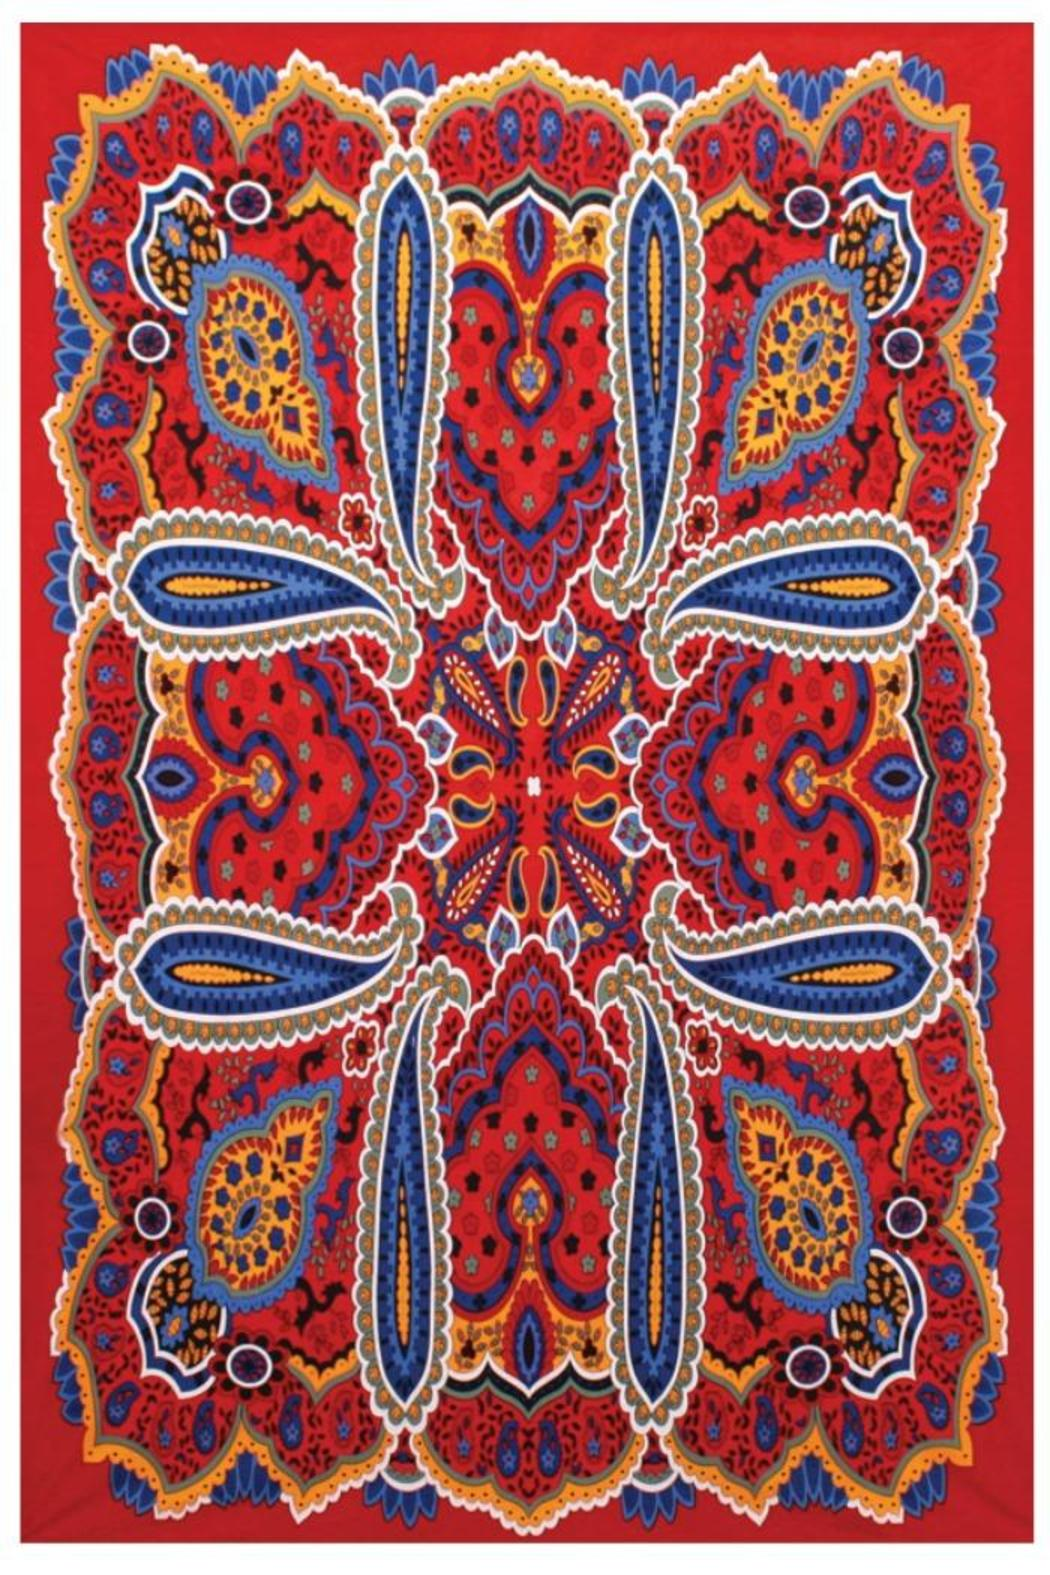 A Little Bit Hippy Bright Paisley Tapestry - Main Image